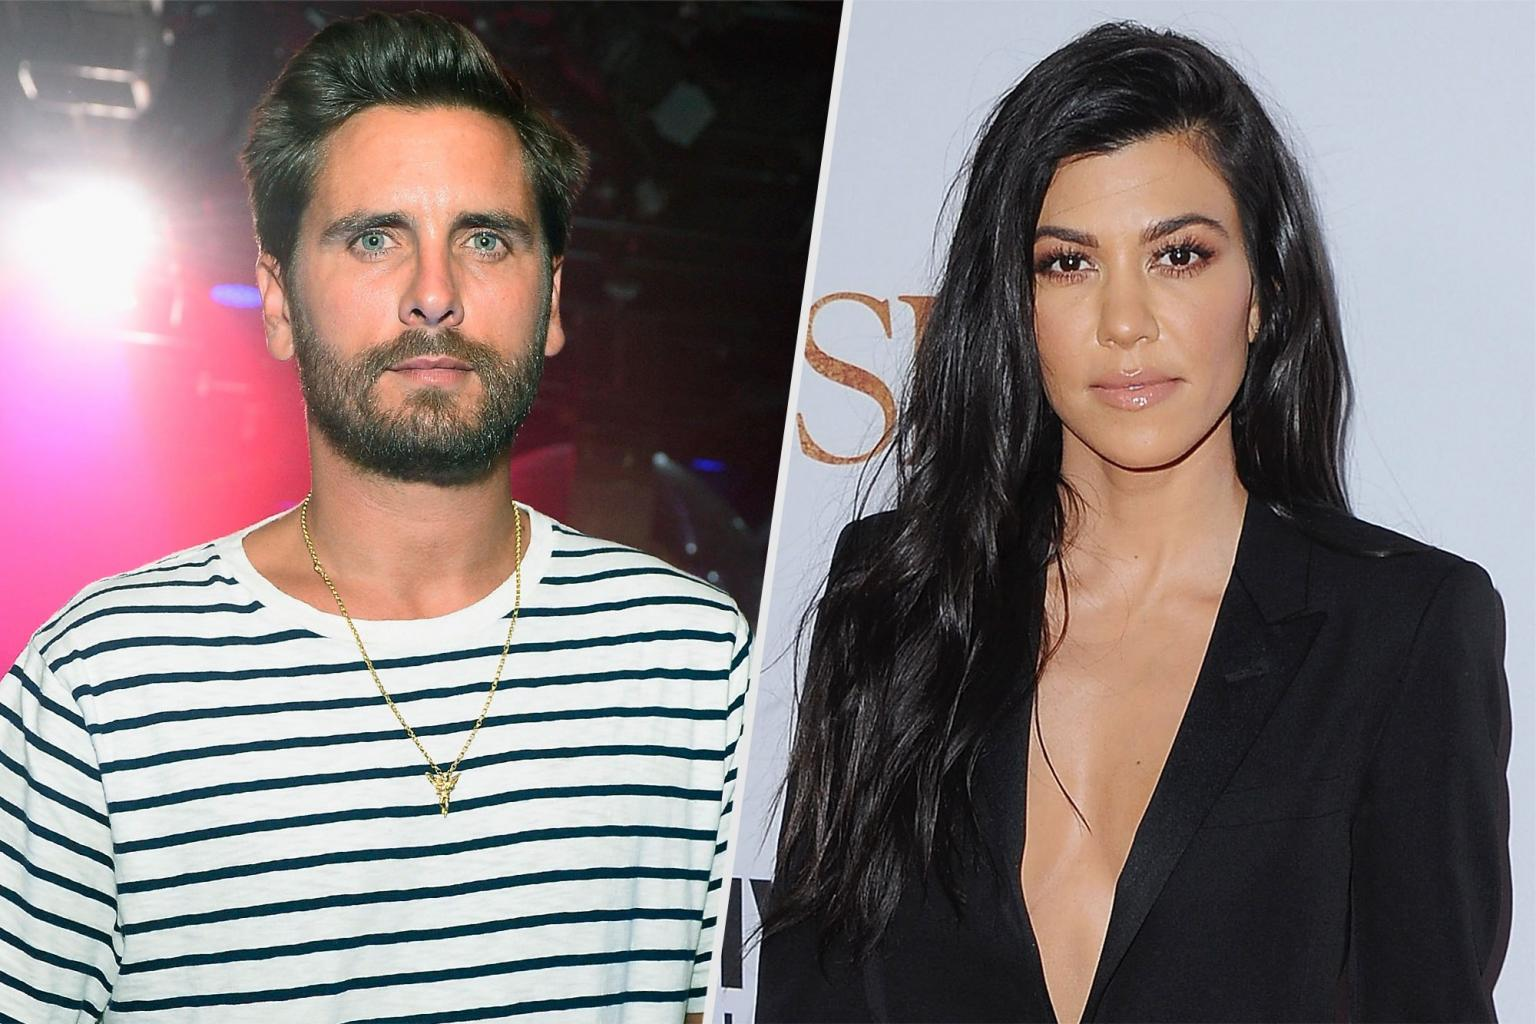 Kourtney Kardashian & Scott Disick Enjoy Family Vacation in Nantucket After Tense Few Months